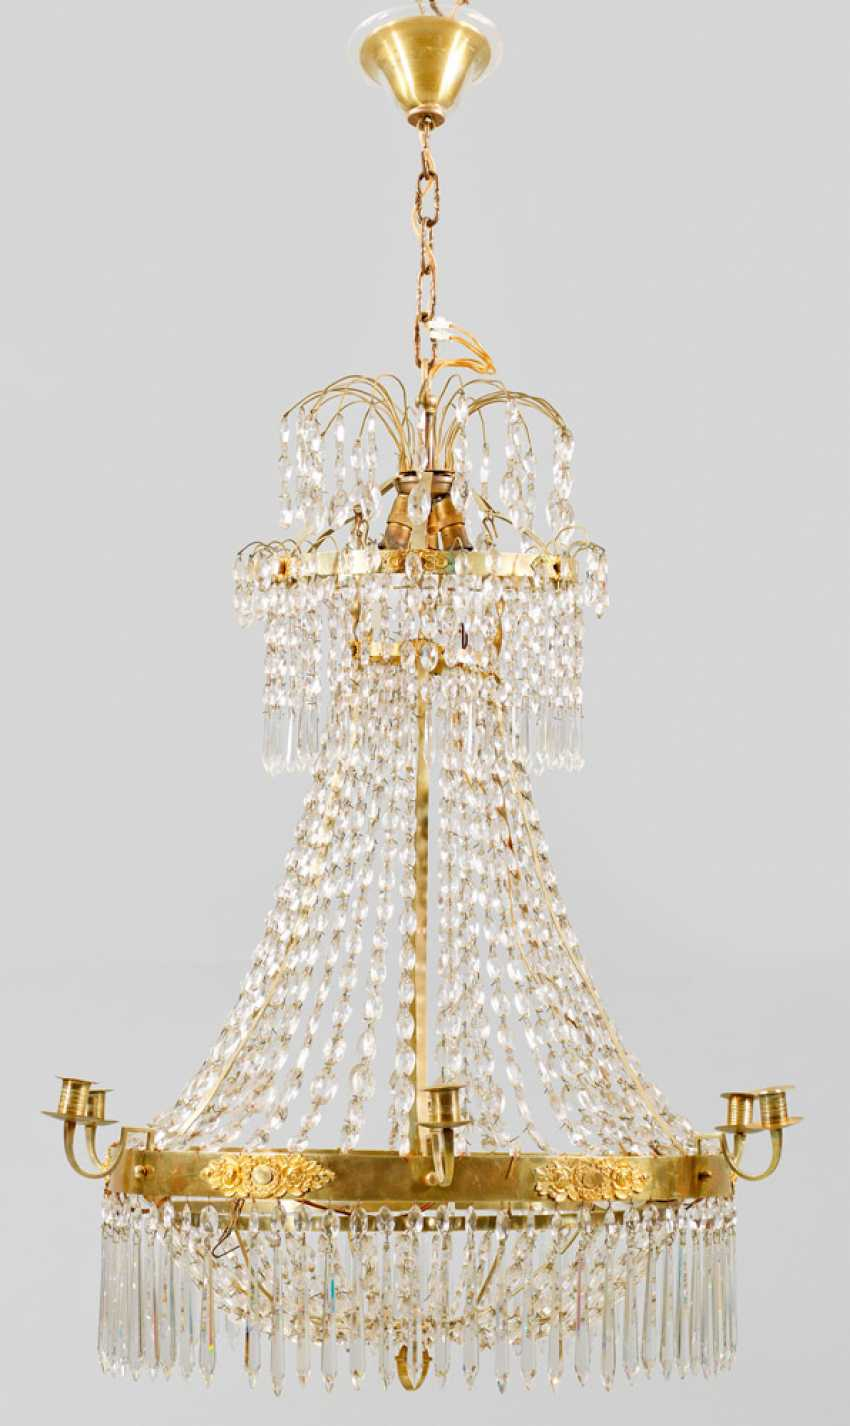 Empire Ceiling Chandelier - photo 1